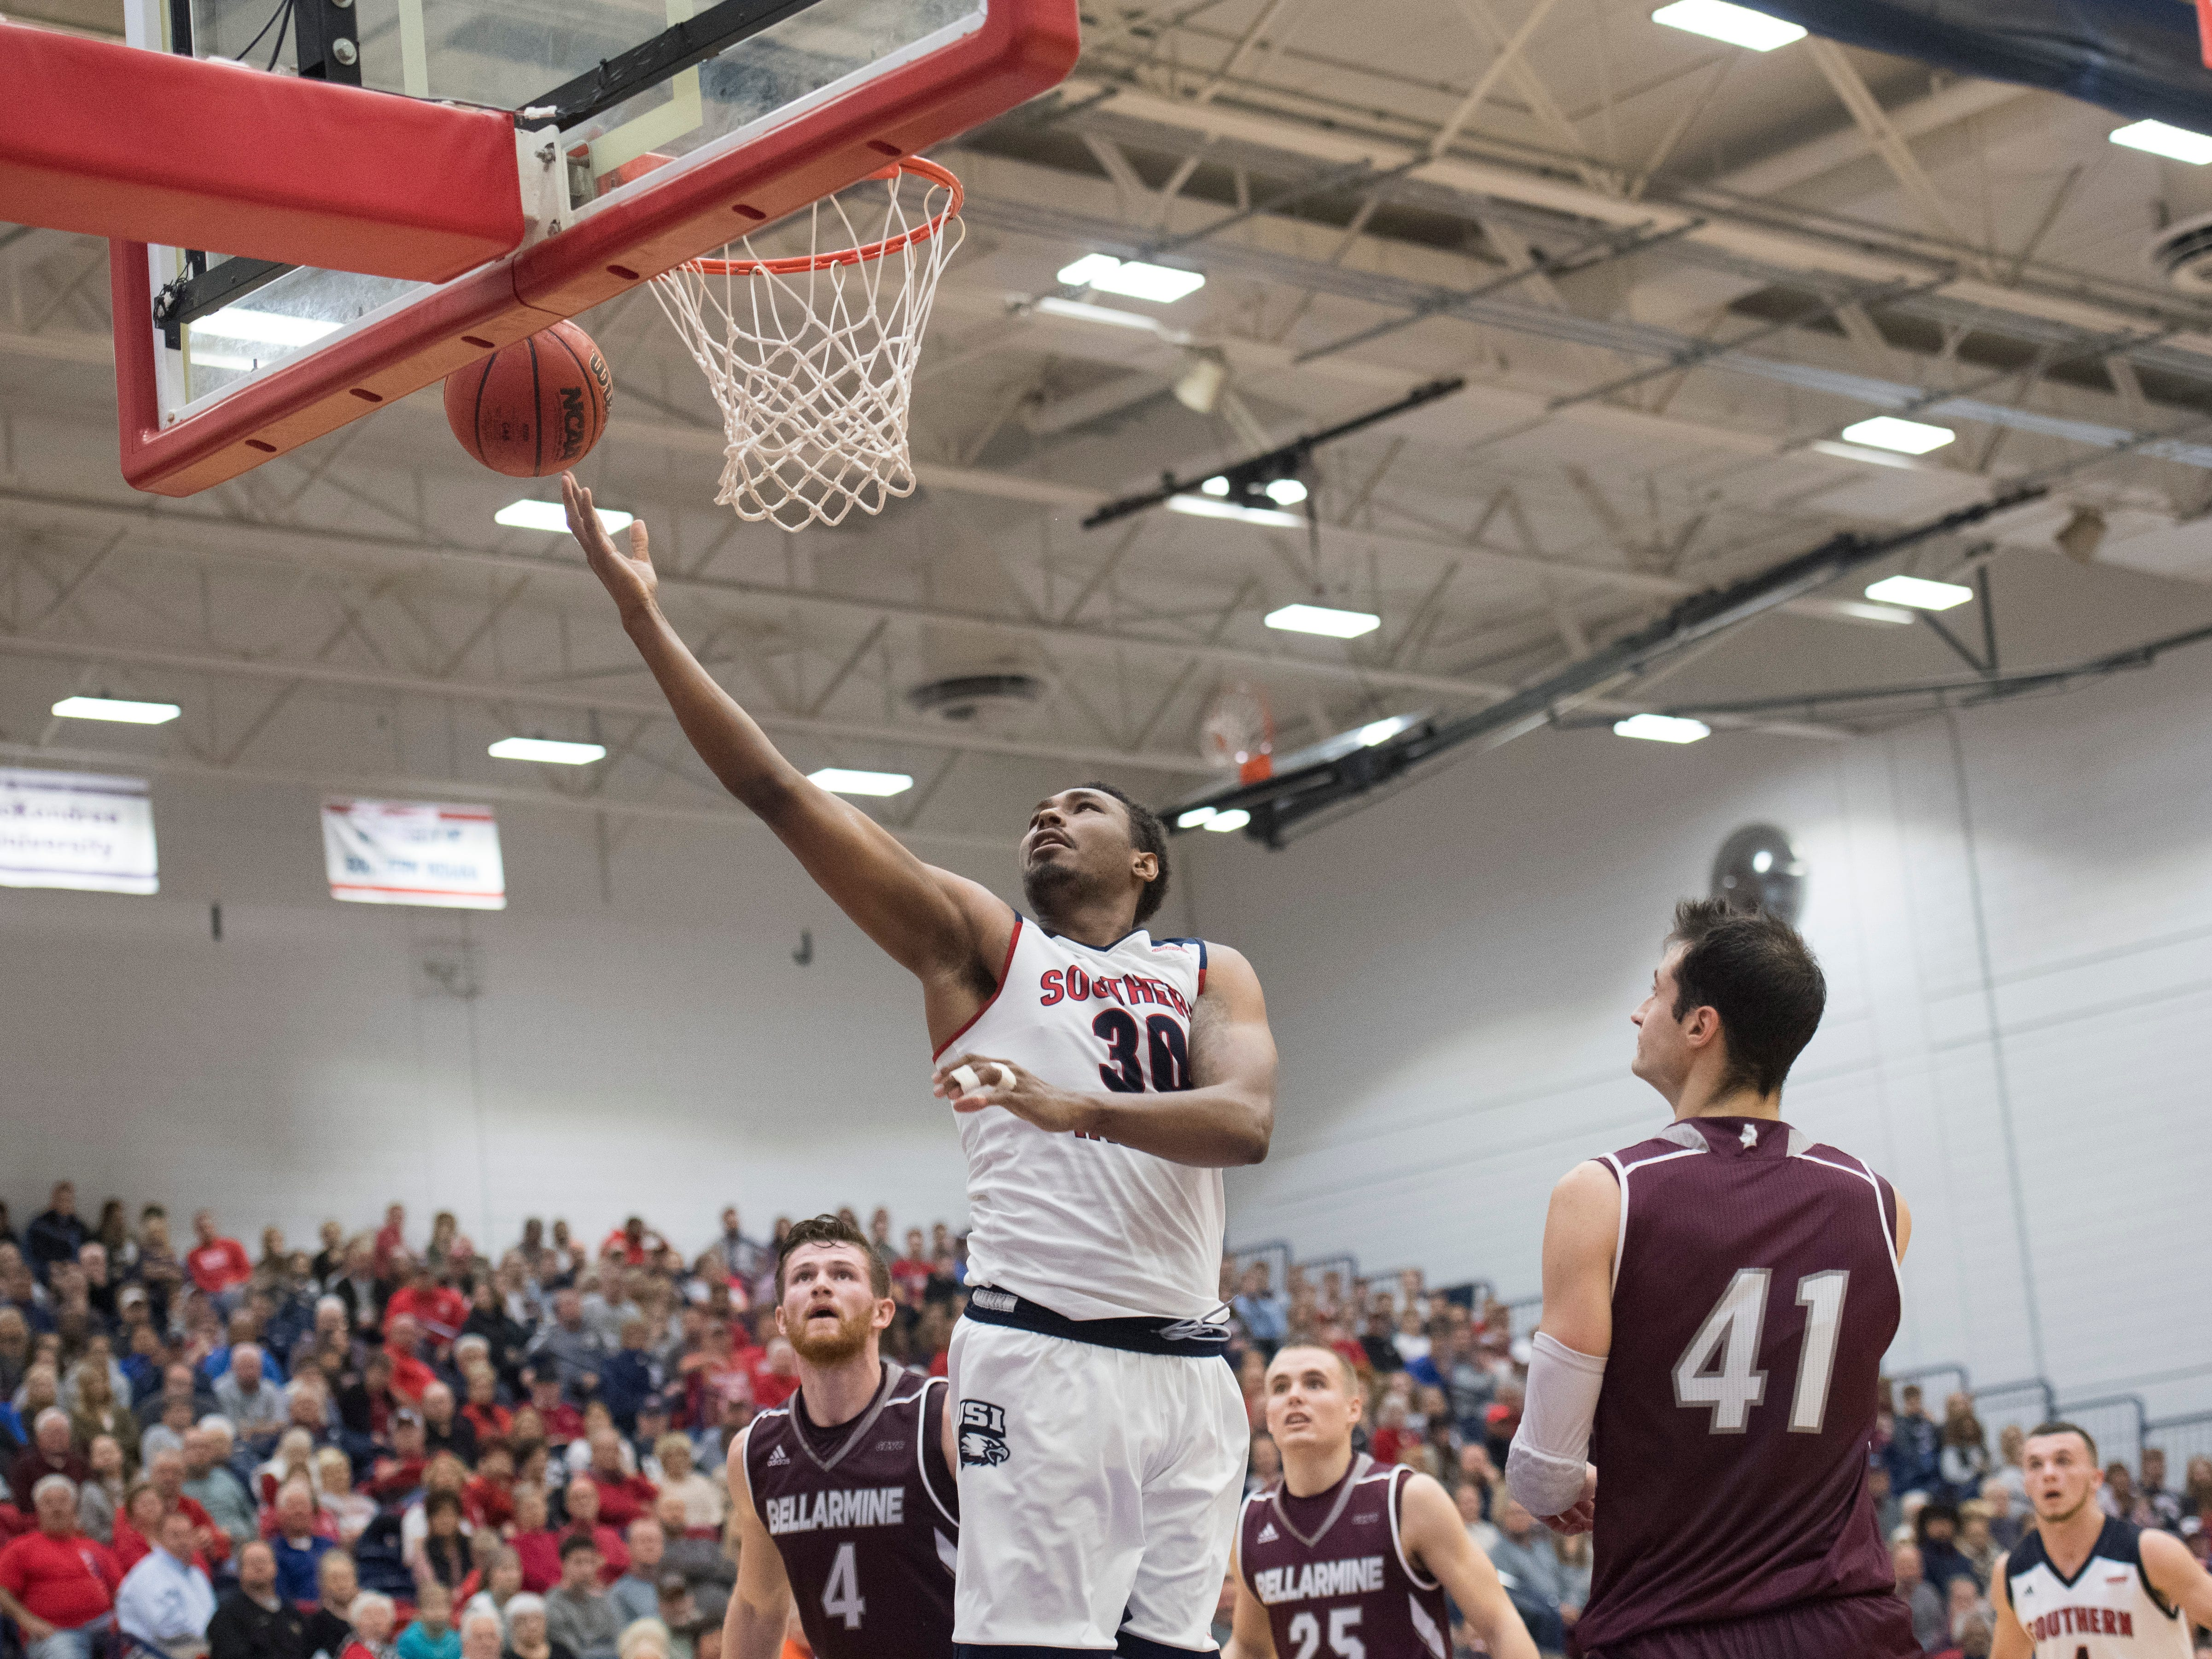 USI's Josh Price (30) reaches for the basket during the USI vs Bellarmine basketball game at the PAC Saturday, Dec. 1, 2018.